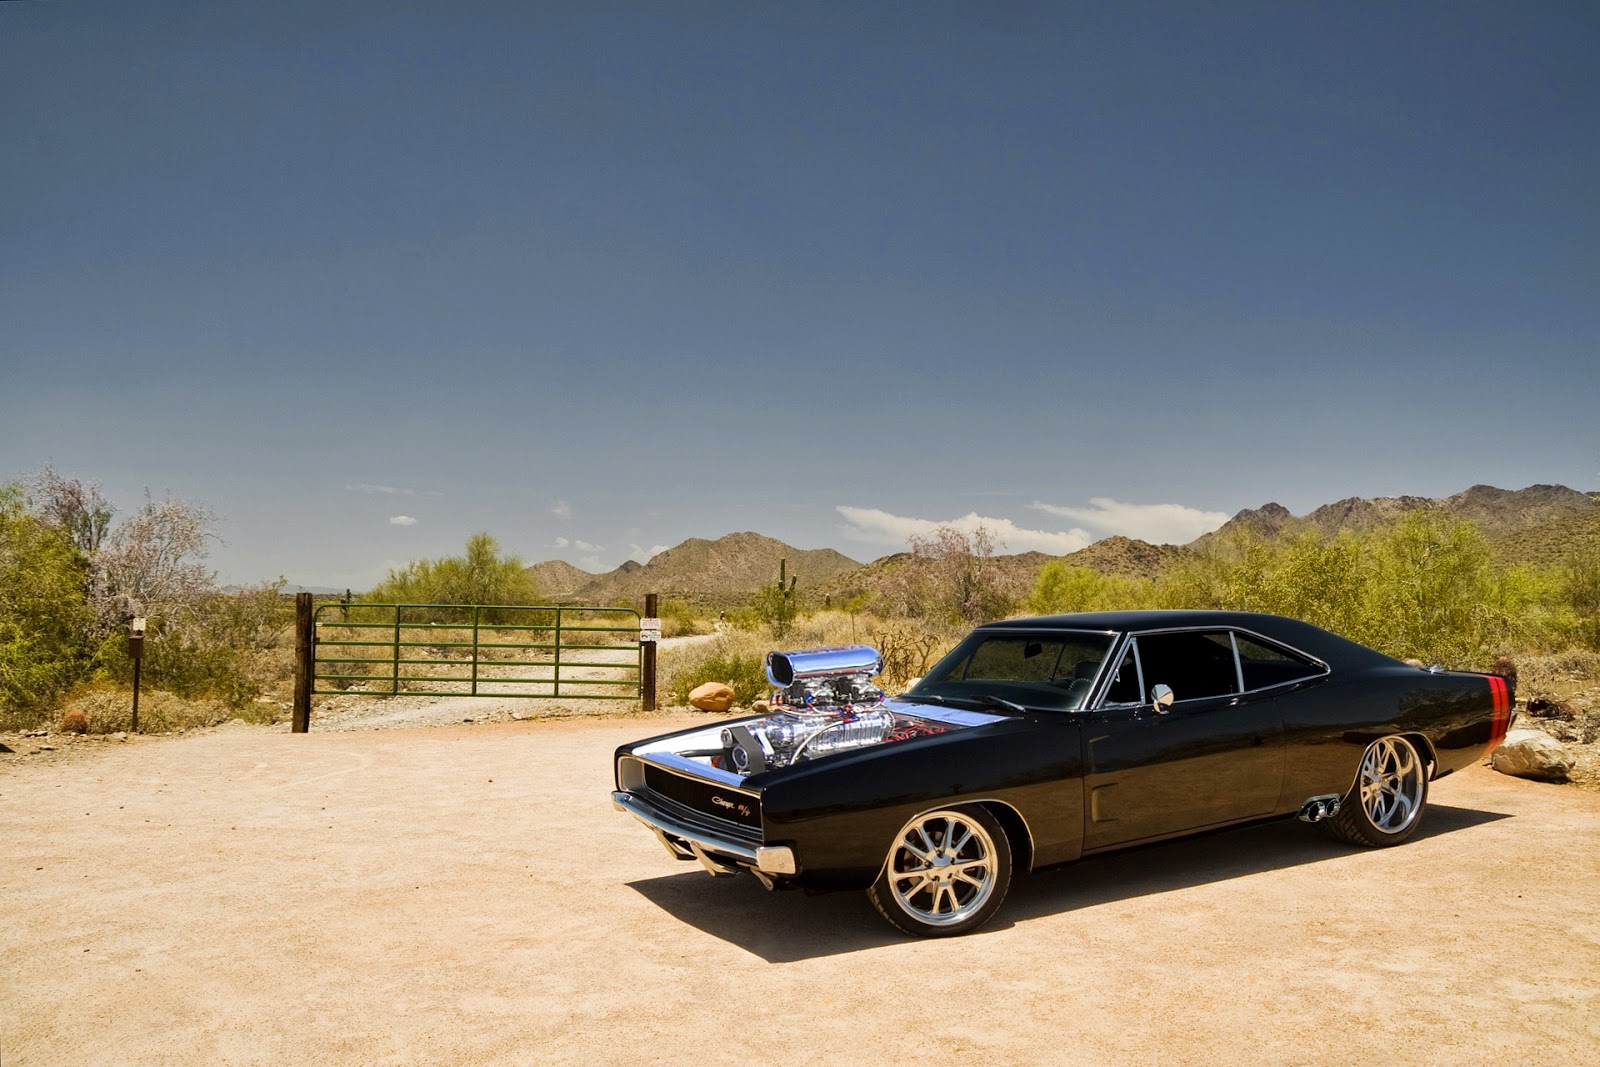 All About Dodge Charger ♥: Fast And Furious Dodge Charger 1970